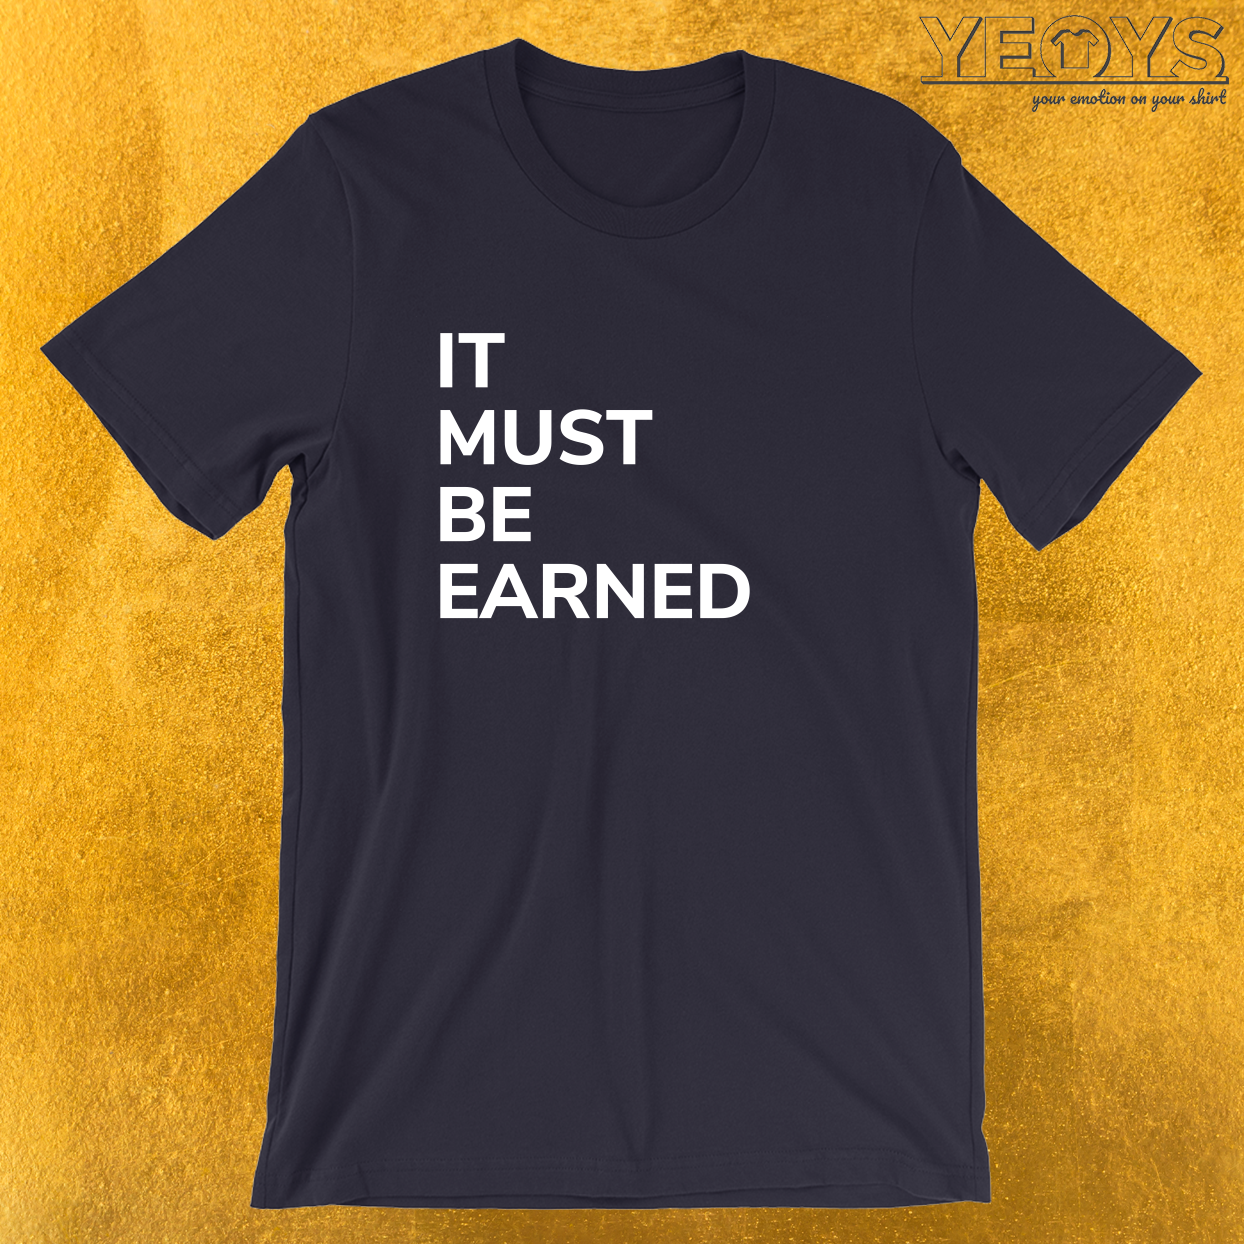 It Must Be Earned – Girl & Boy Scout Tee